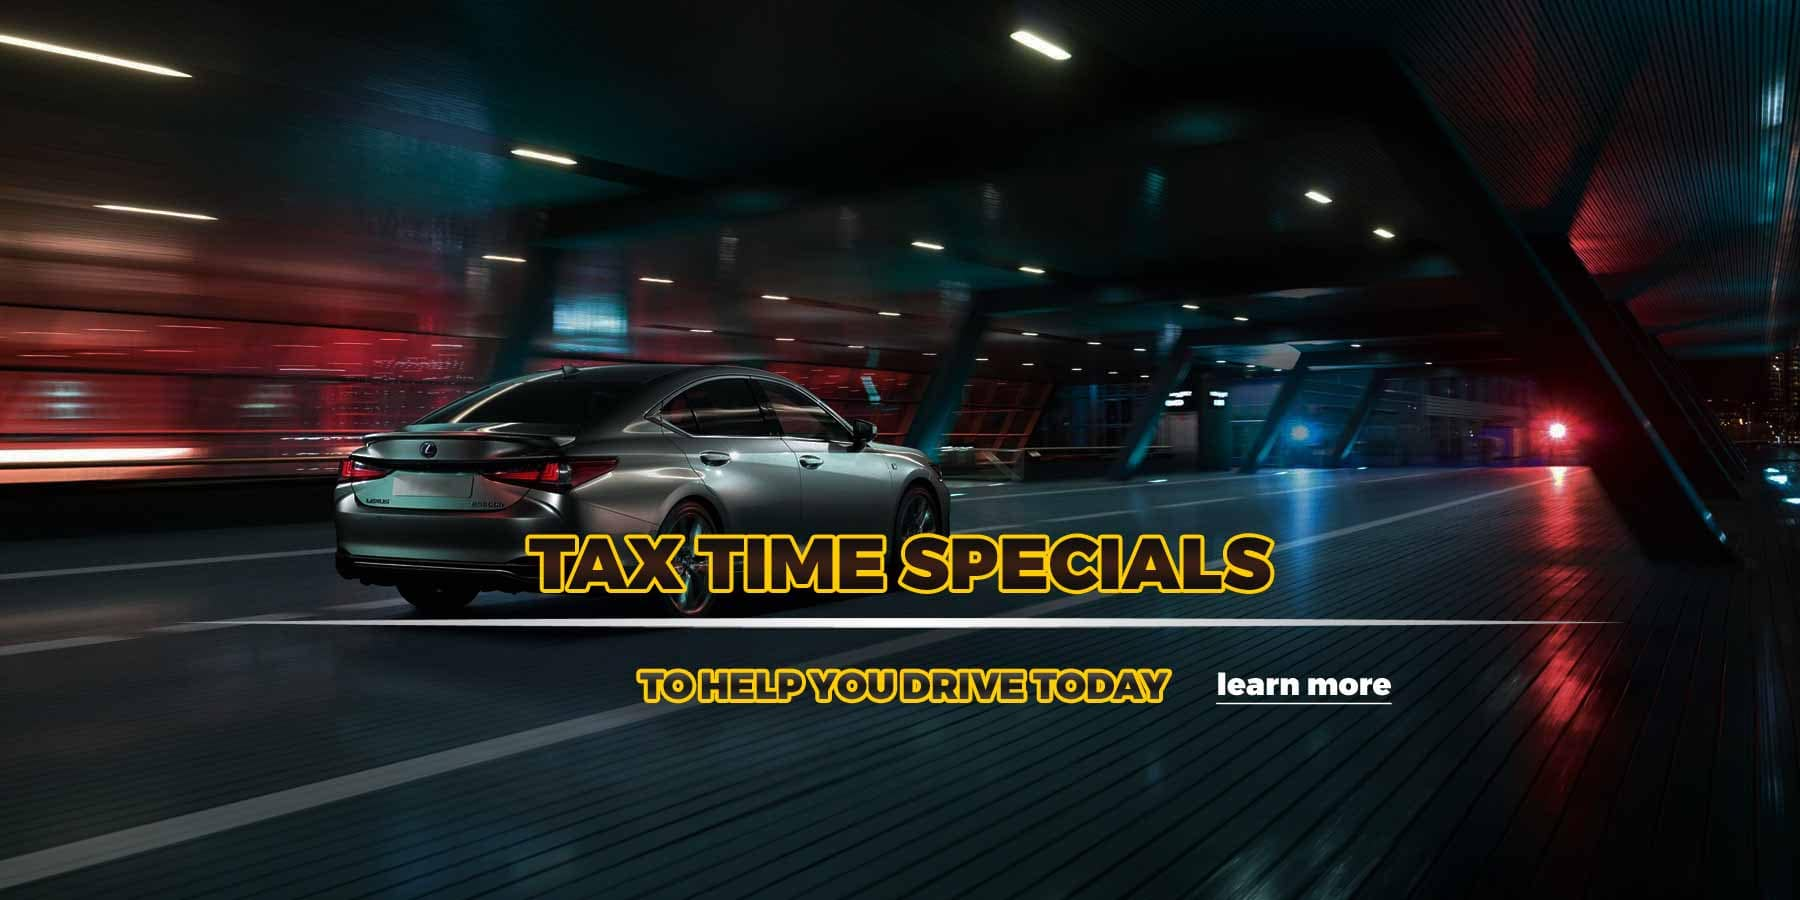 Used Car Specials - Tax Season Promotion